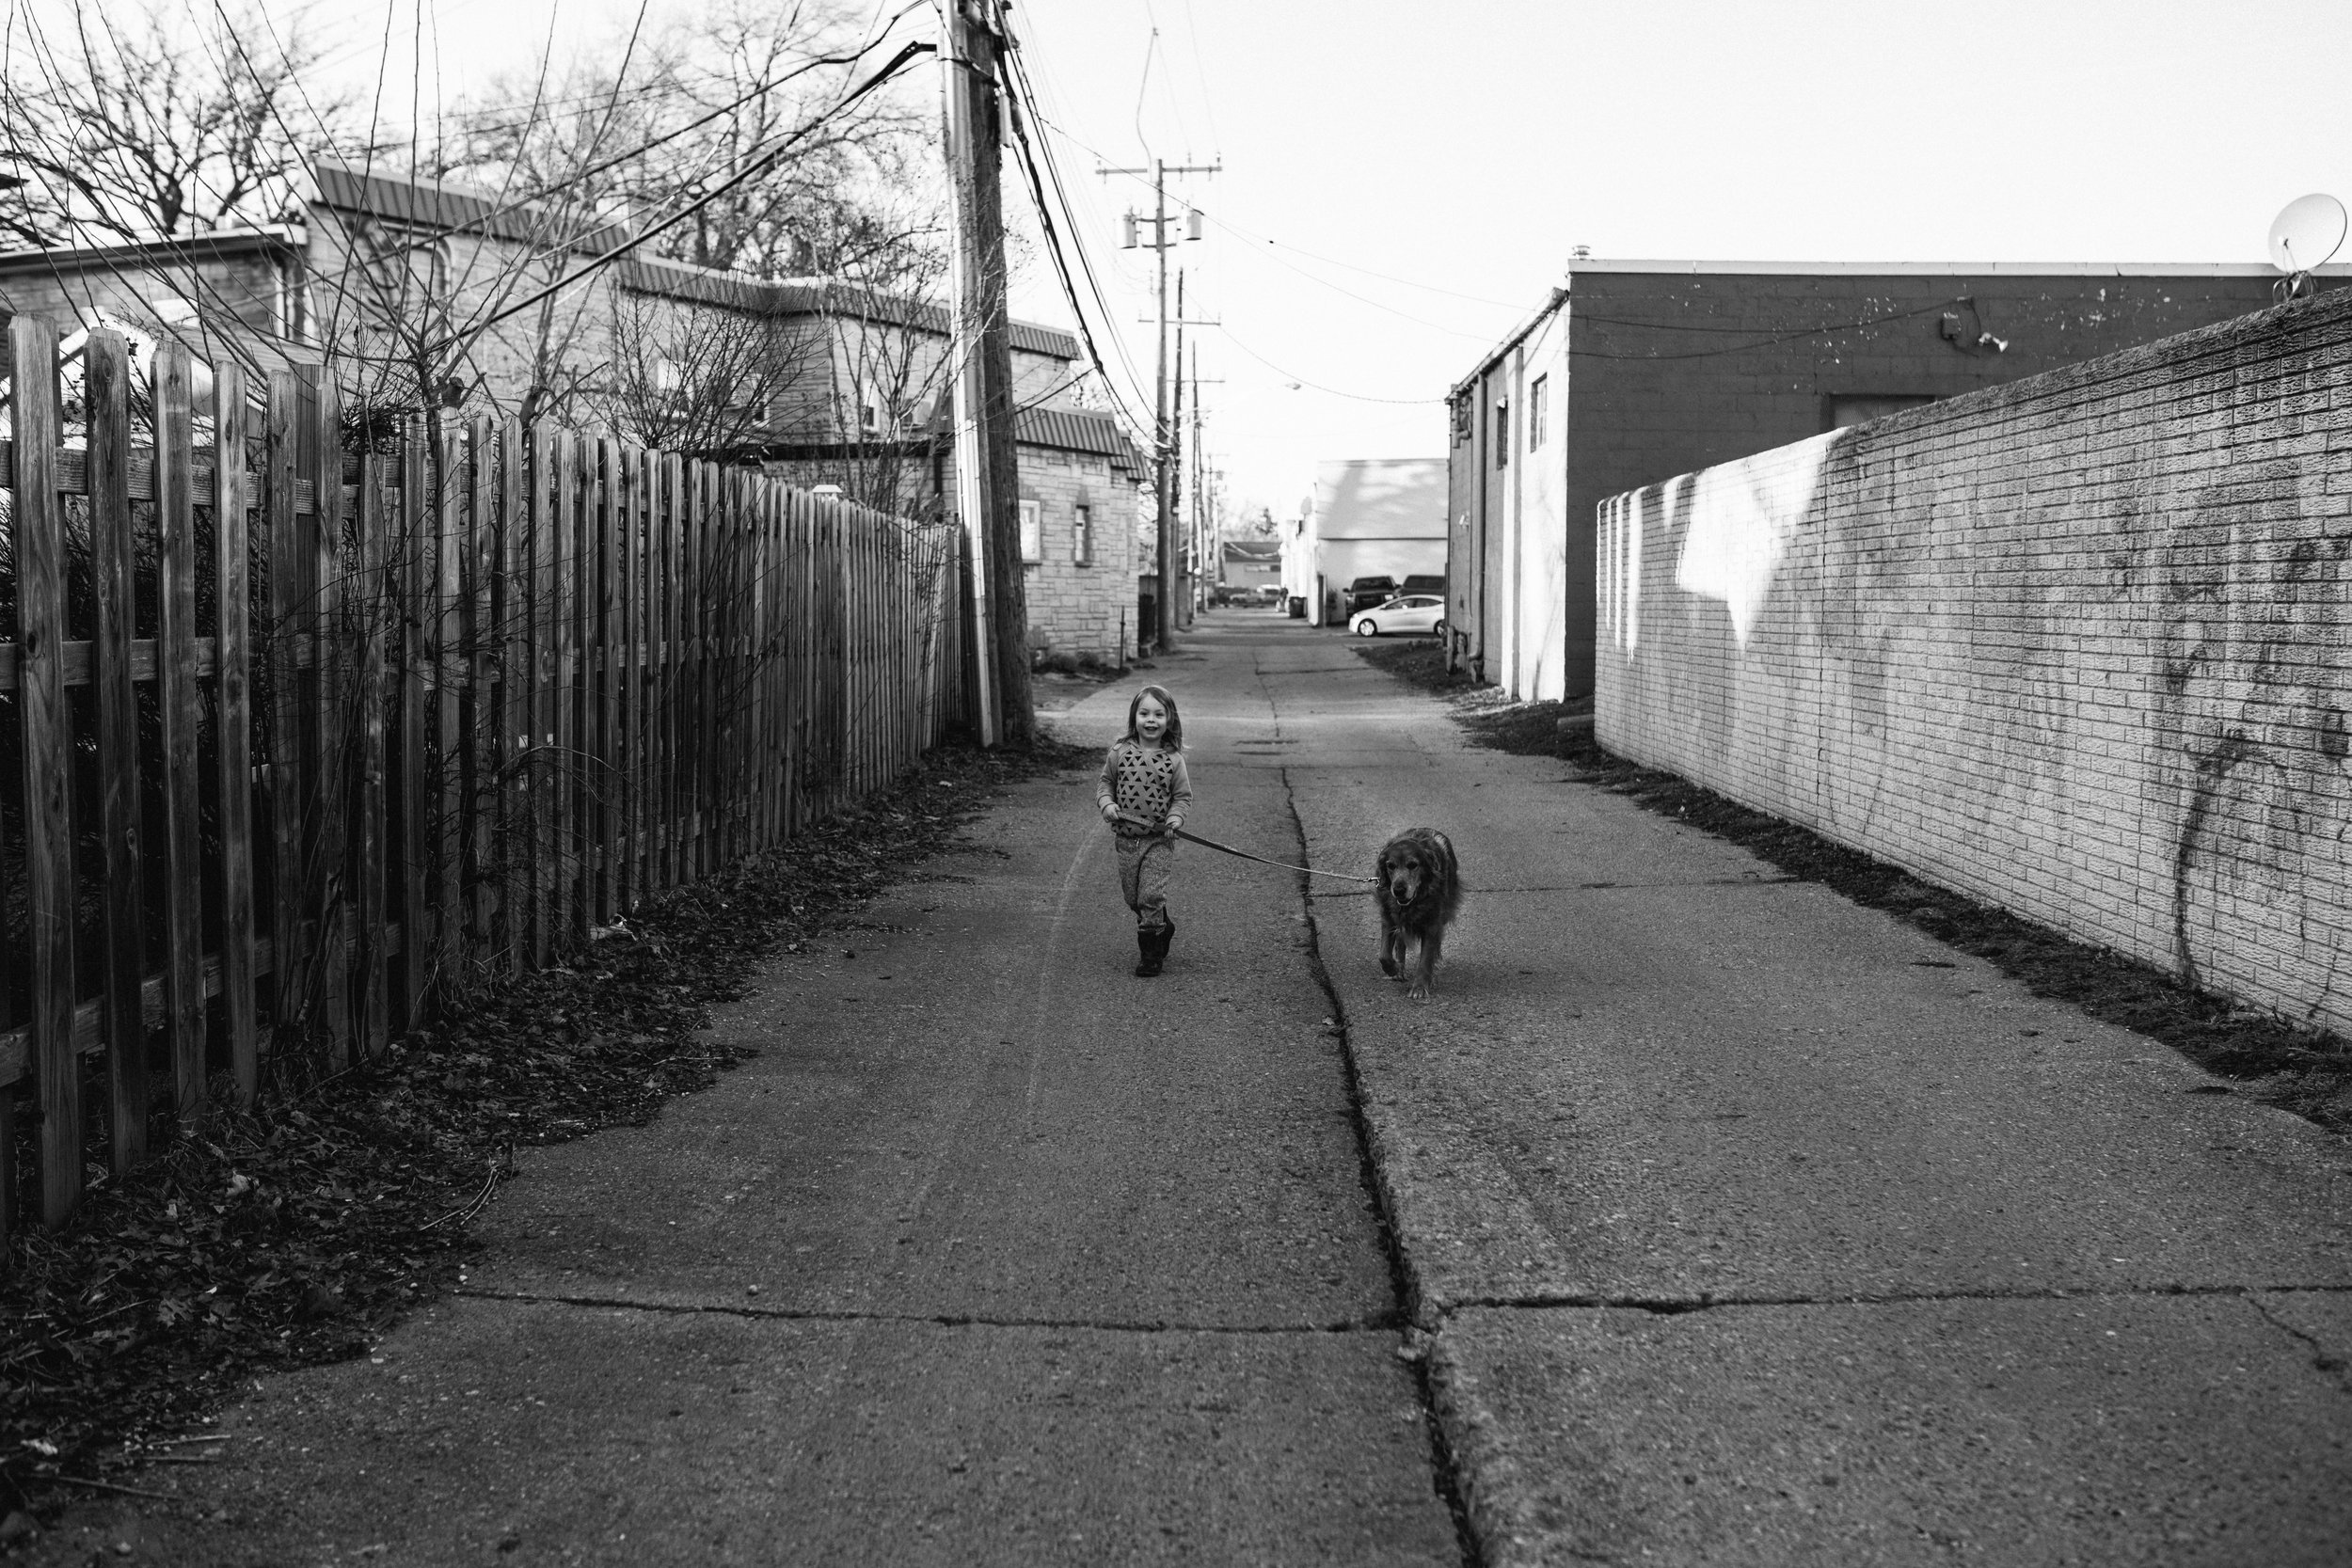 Little boy walking dogs in alley.